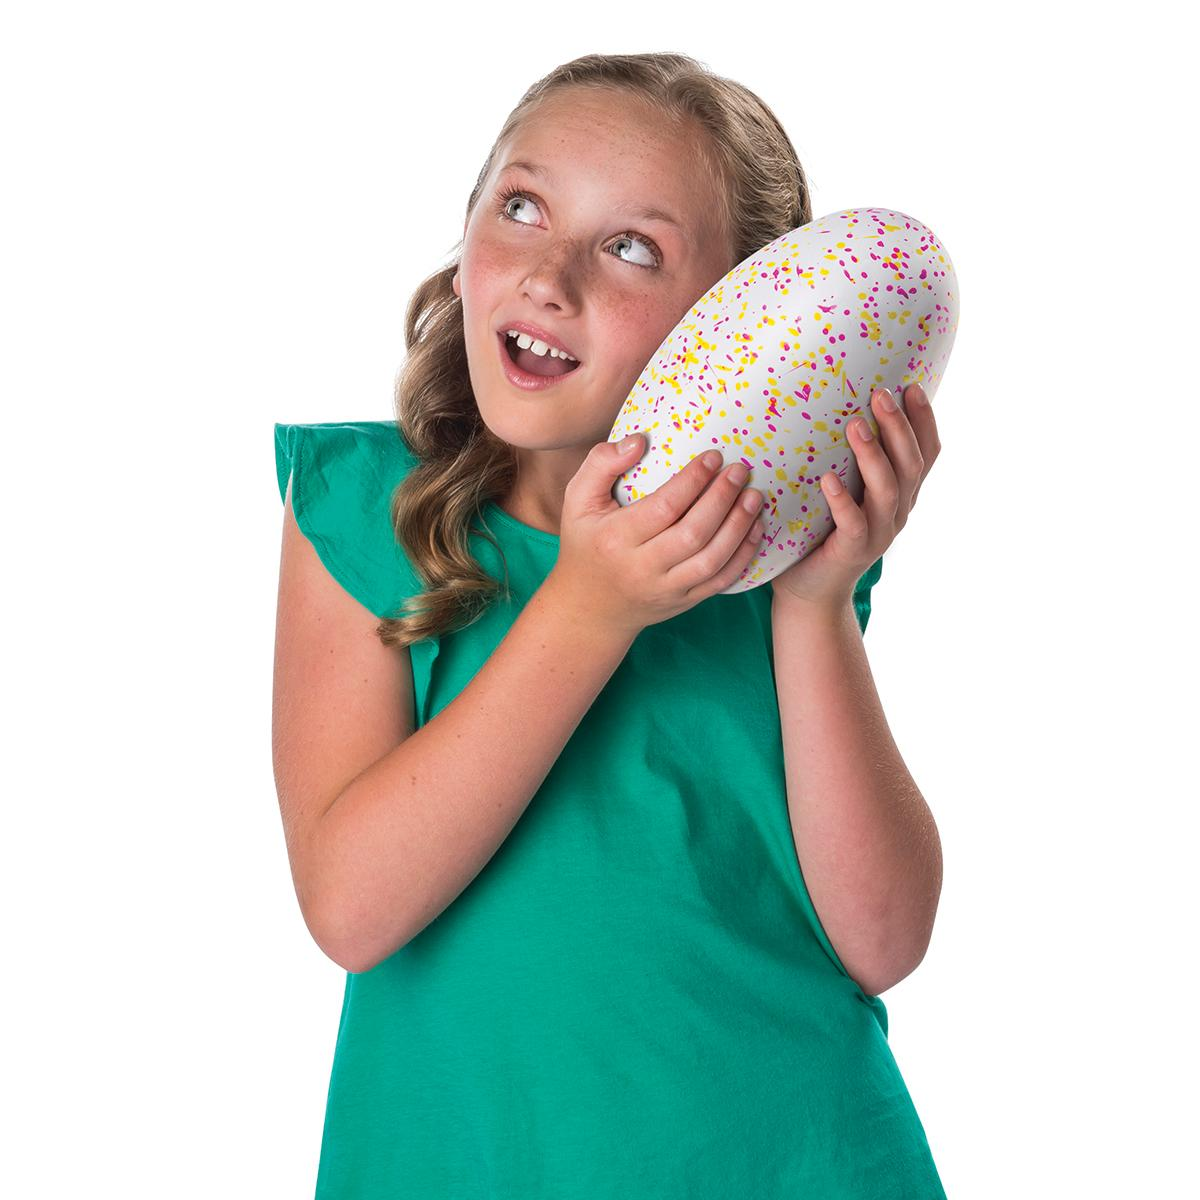 Hatchimals Surprise/Photo courtesy of the Toy Insider